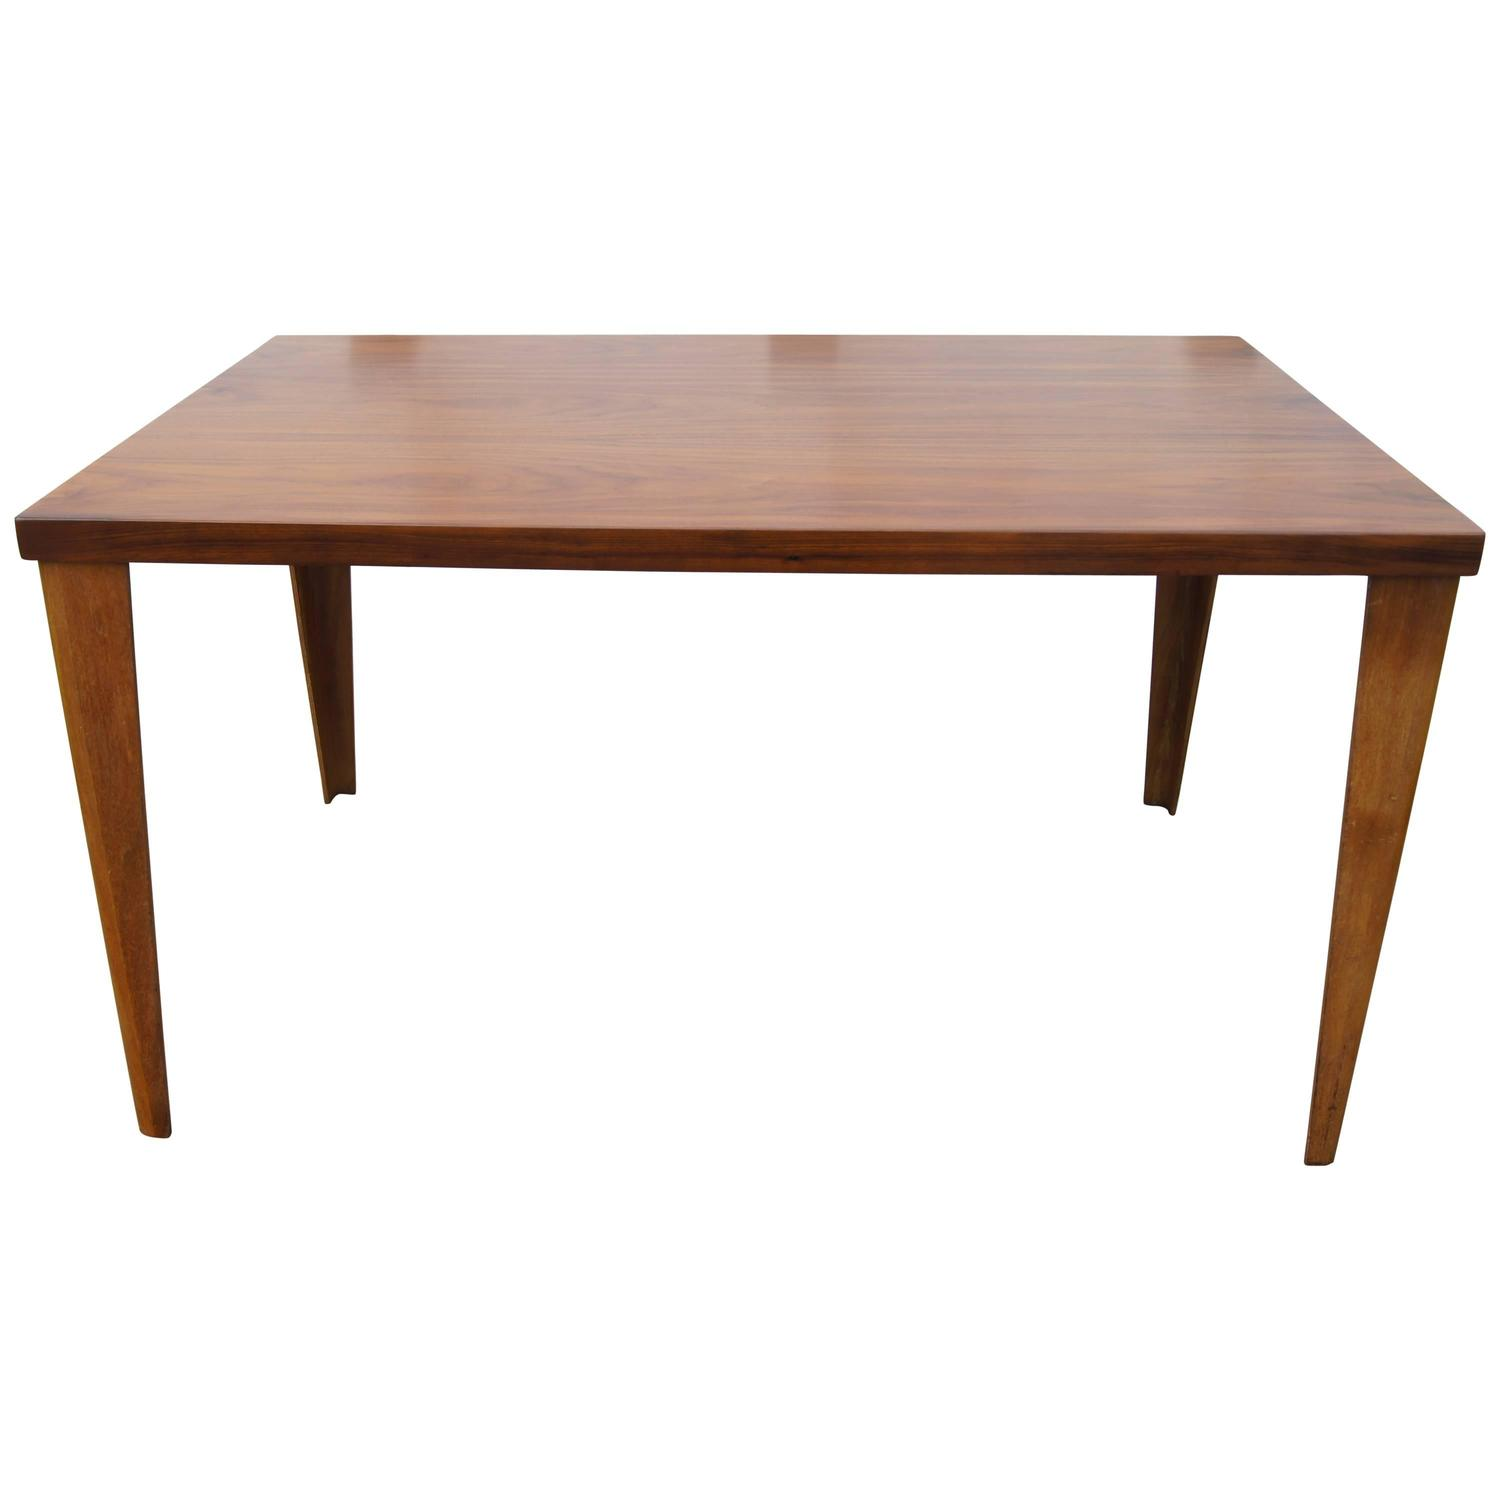 rare dtw 1 dining table in walnut by charles eames for herman miller for sale at 1stdibs. Black Bedroom Furniture Sets. Home Design Ideas